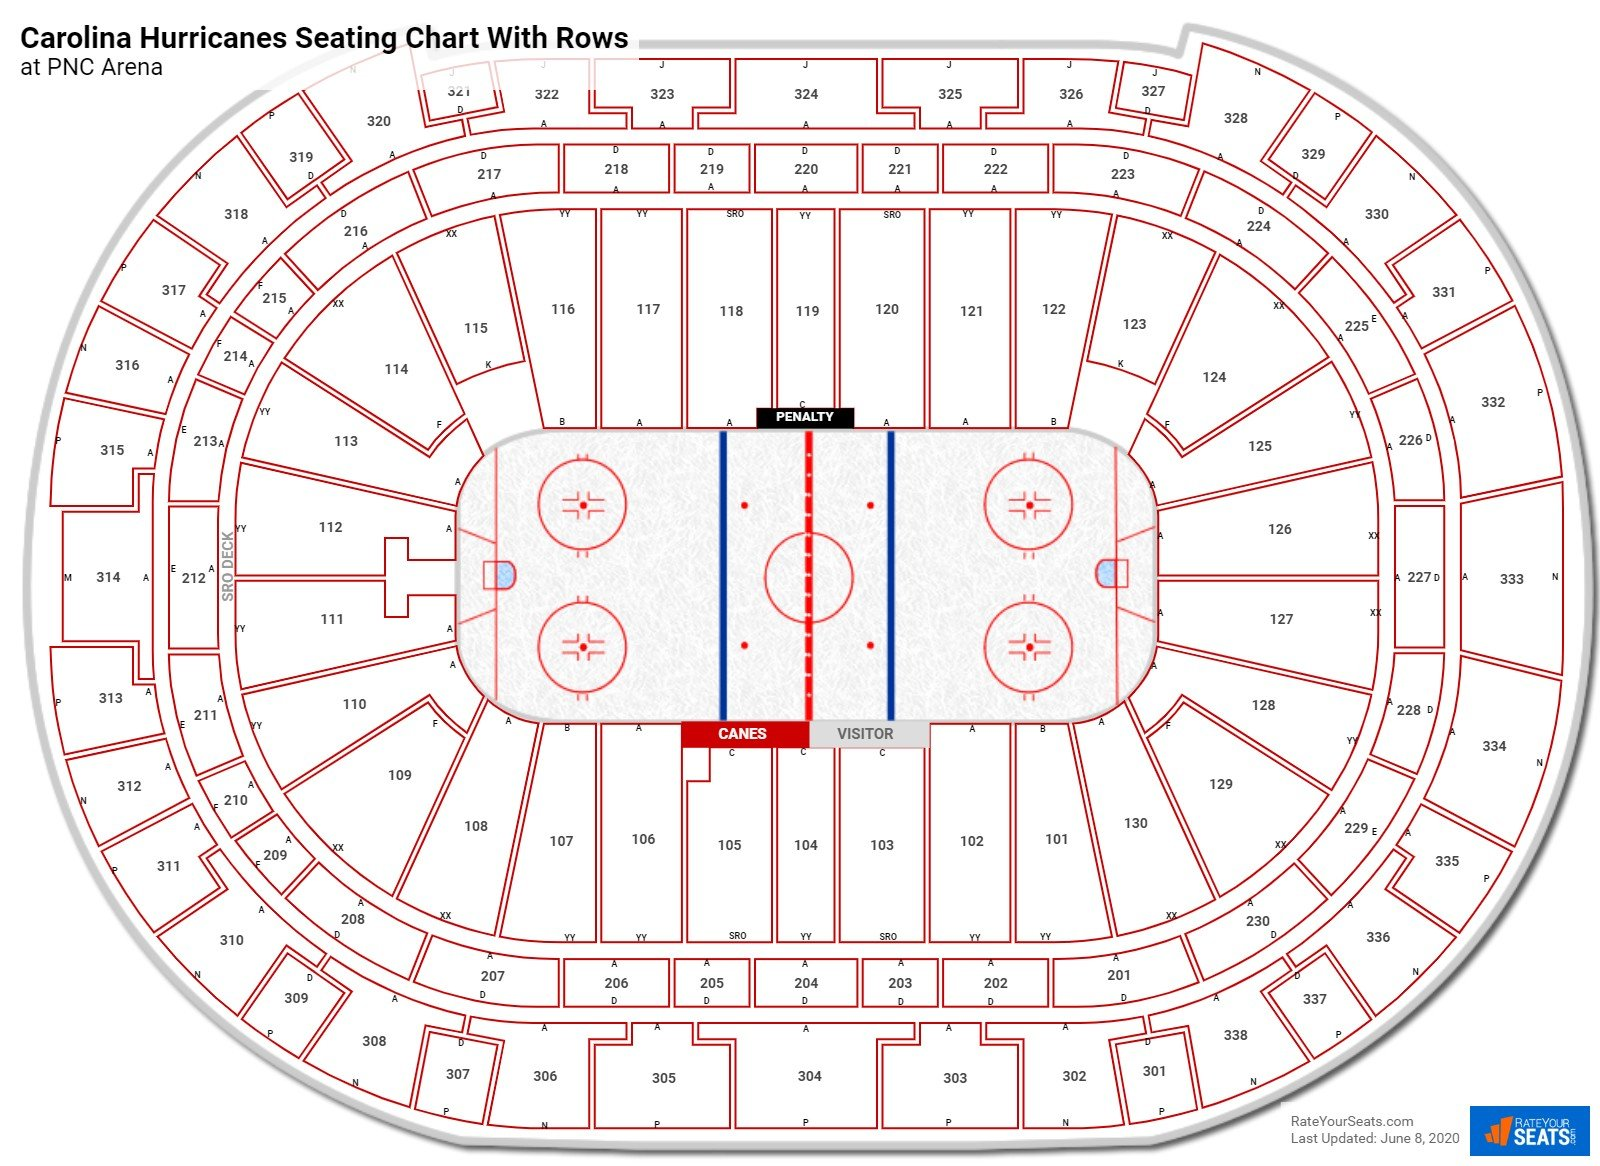 PNC Arena seating chart with rows hockey